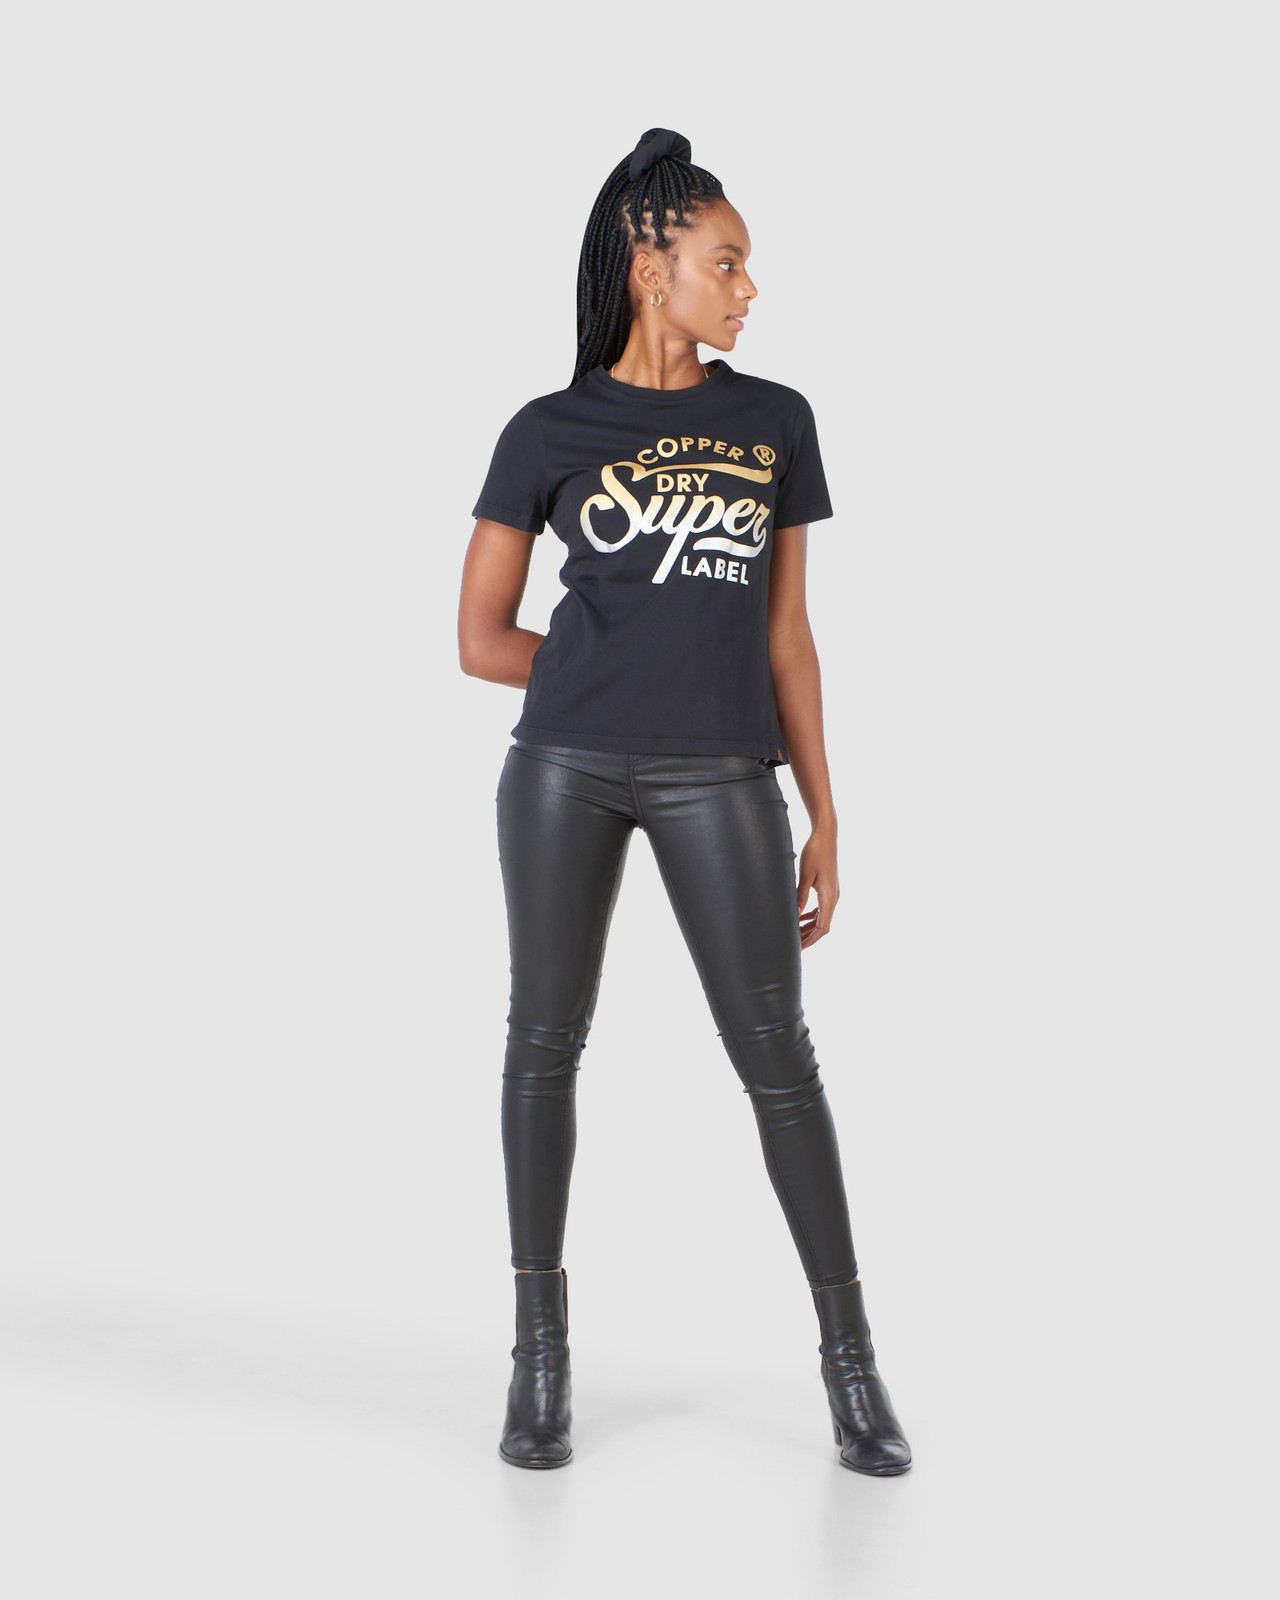 Superdry Womens COPPER LABEL TEE Black Printed T Shirts 1